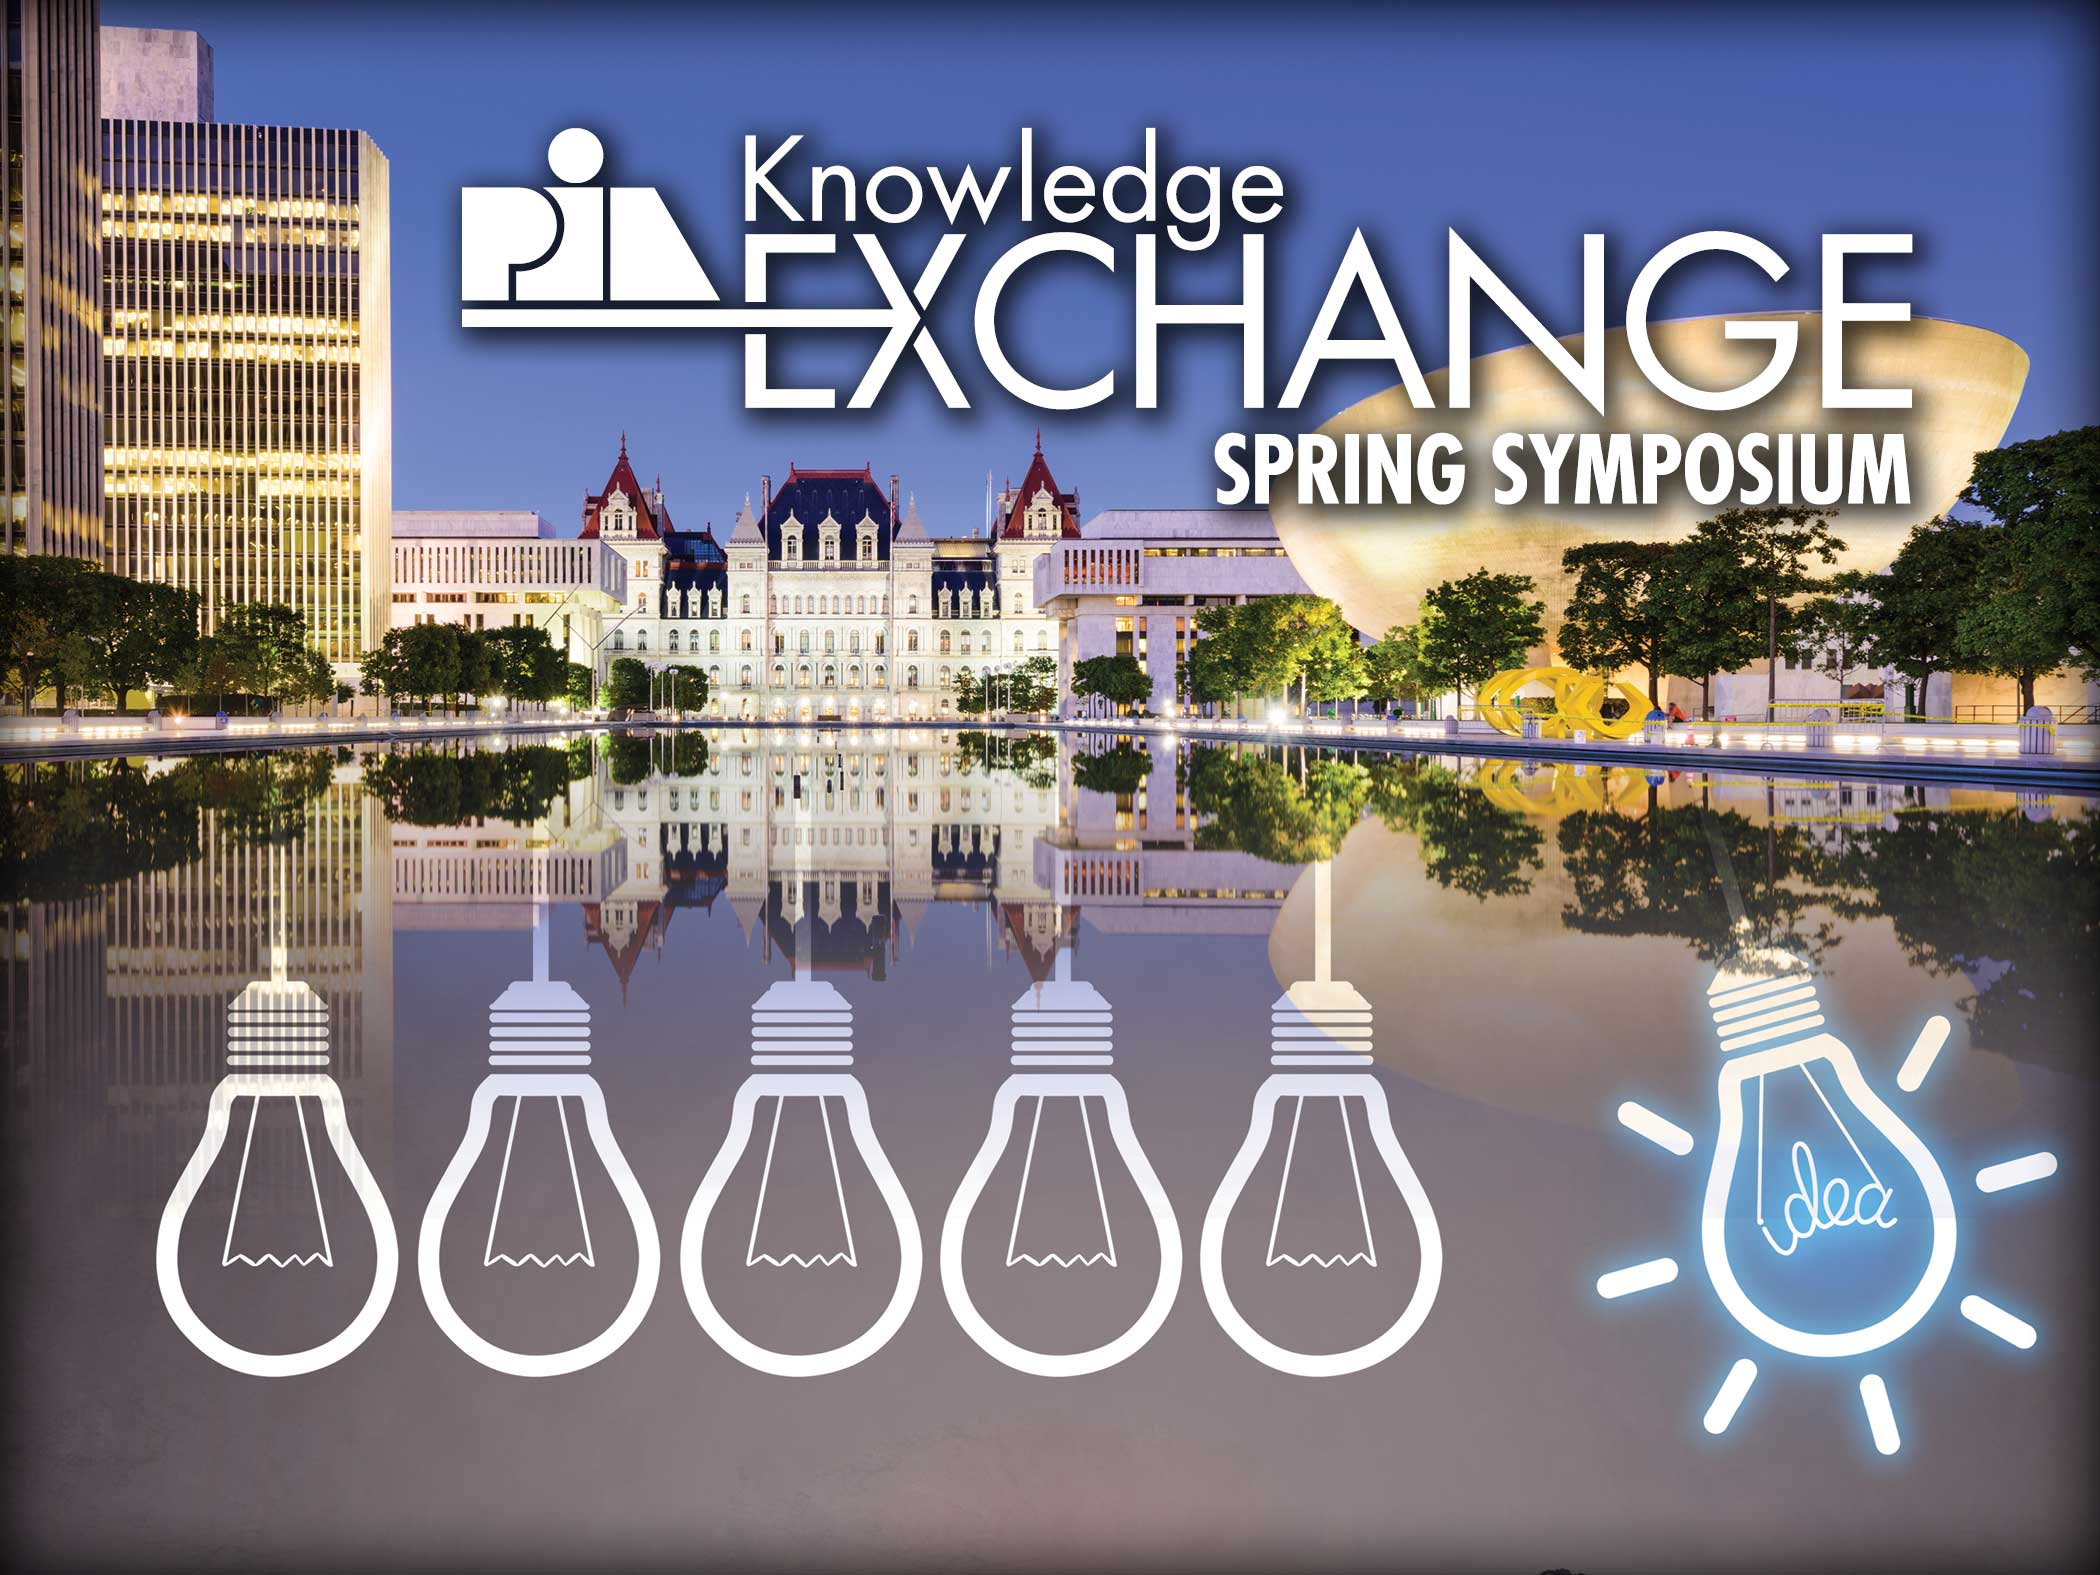 Knowledge Exchange Spring Symposium